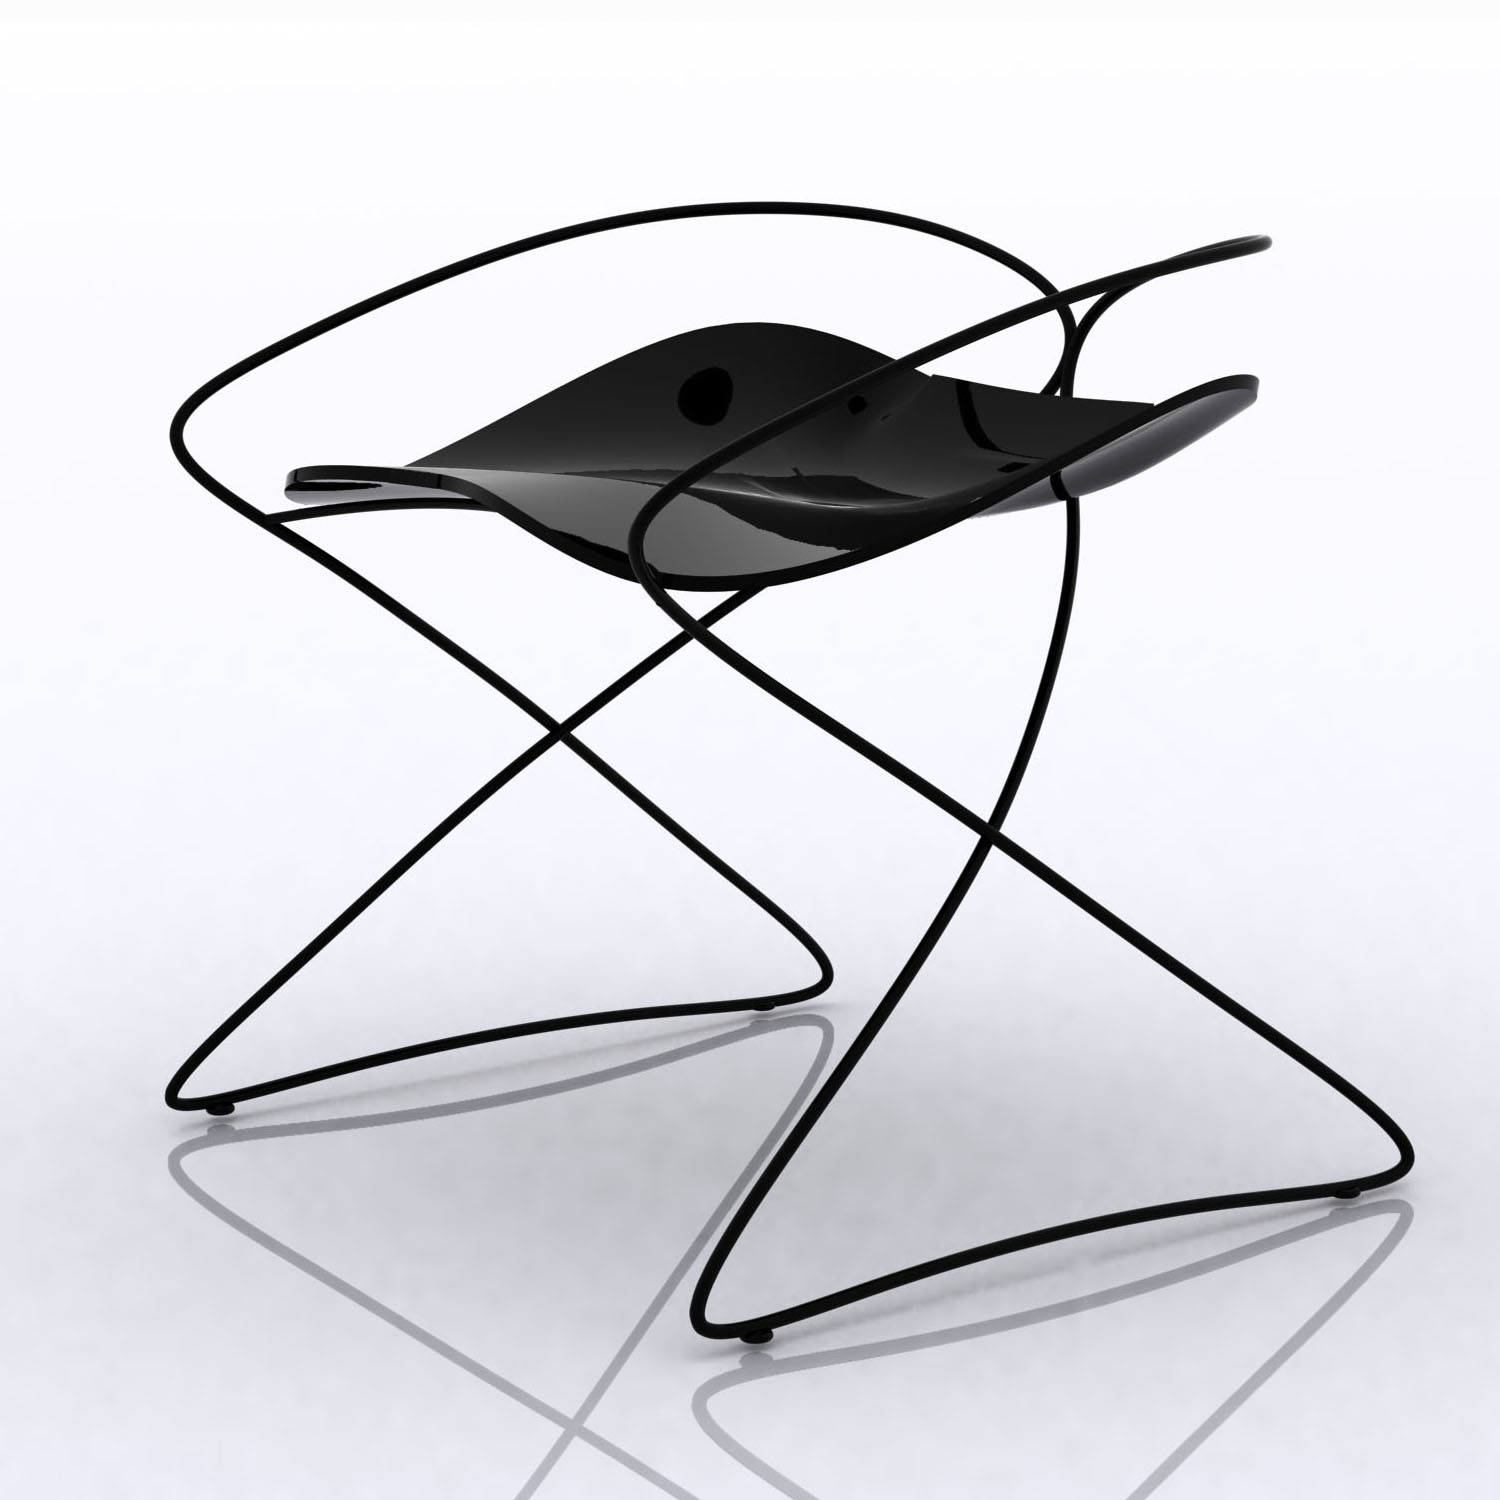 Whippet good designer hugh thomas kollektor for Industrial design chair